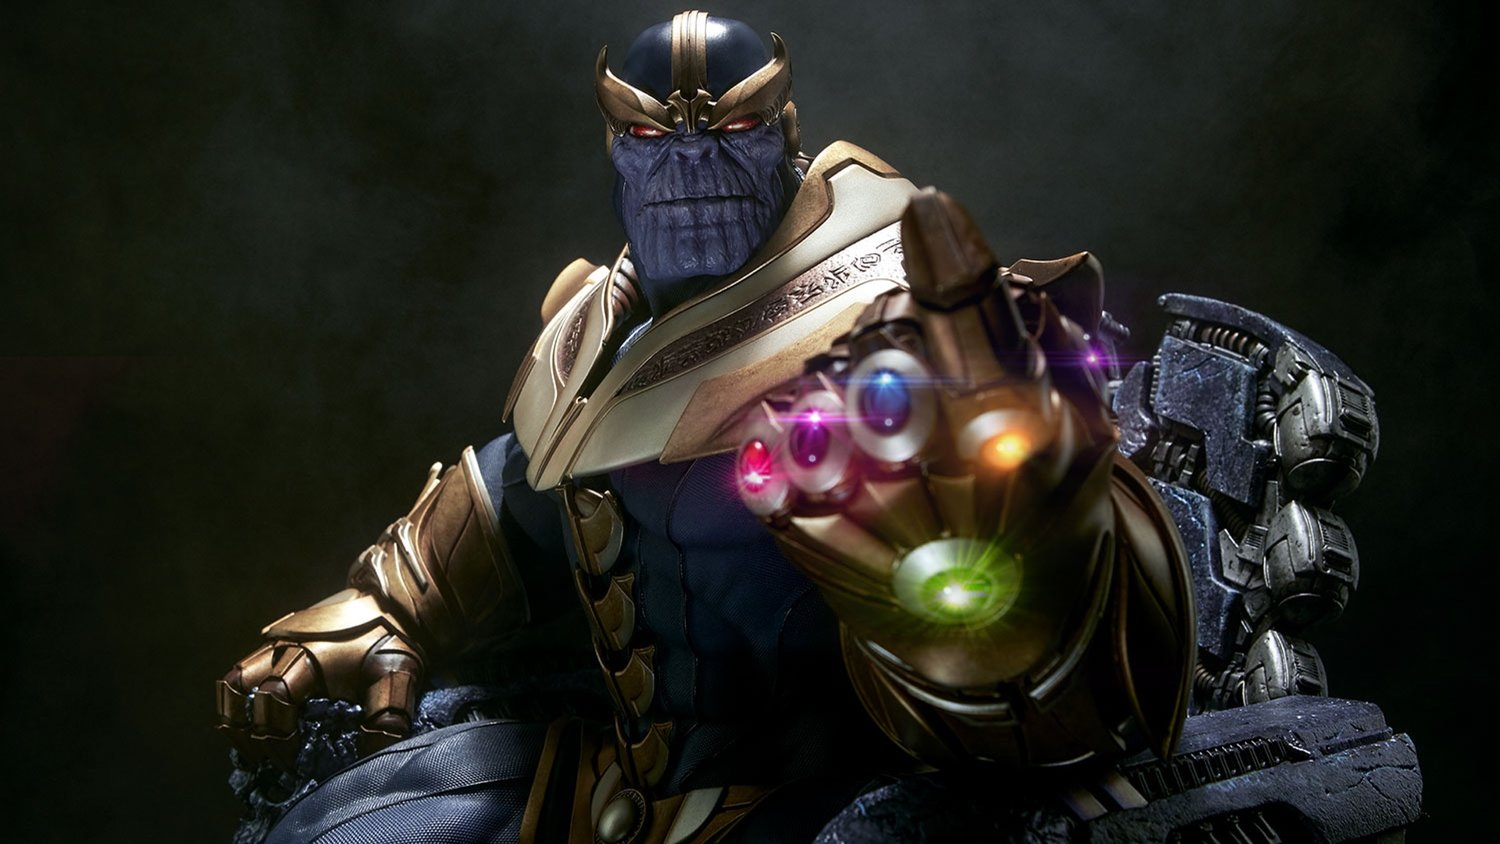 Sideshow Collectibles Unveiled Their Menacing THANOS ON THRONE Maquette